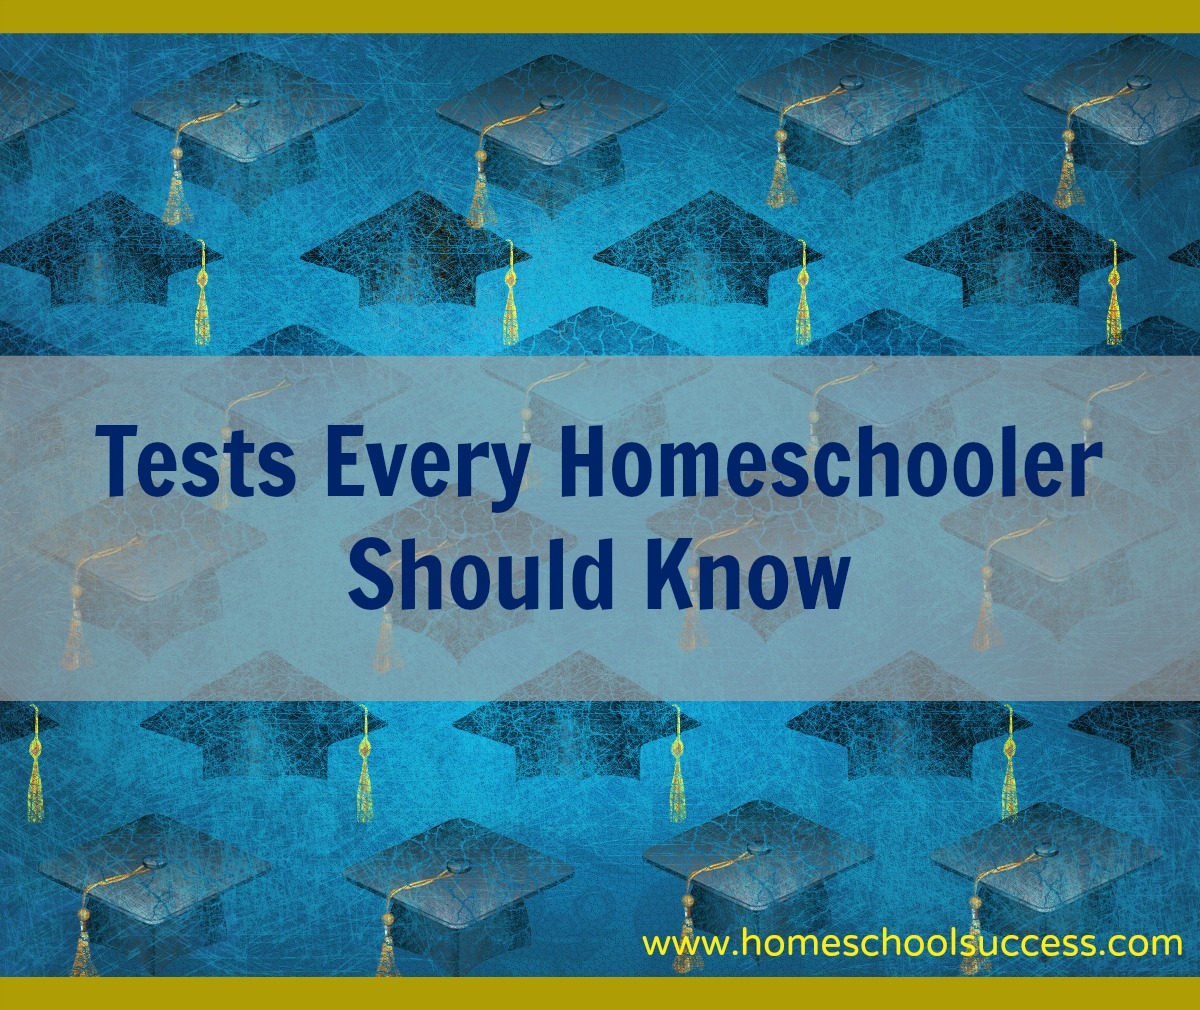 Tests Every Homeschooler Should Know